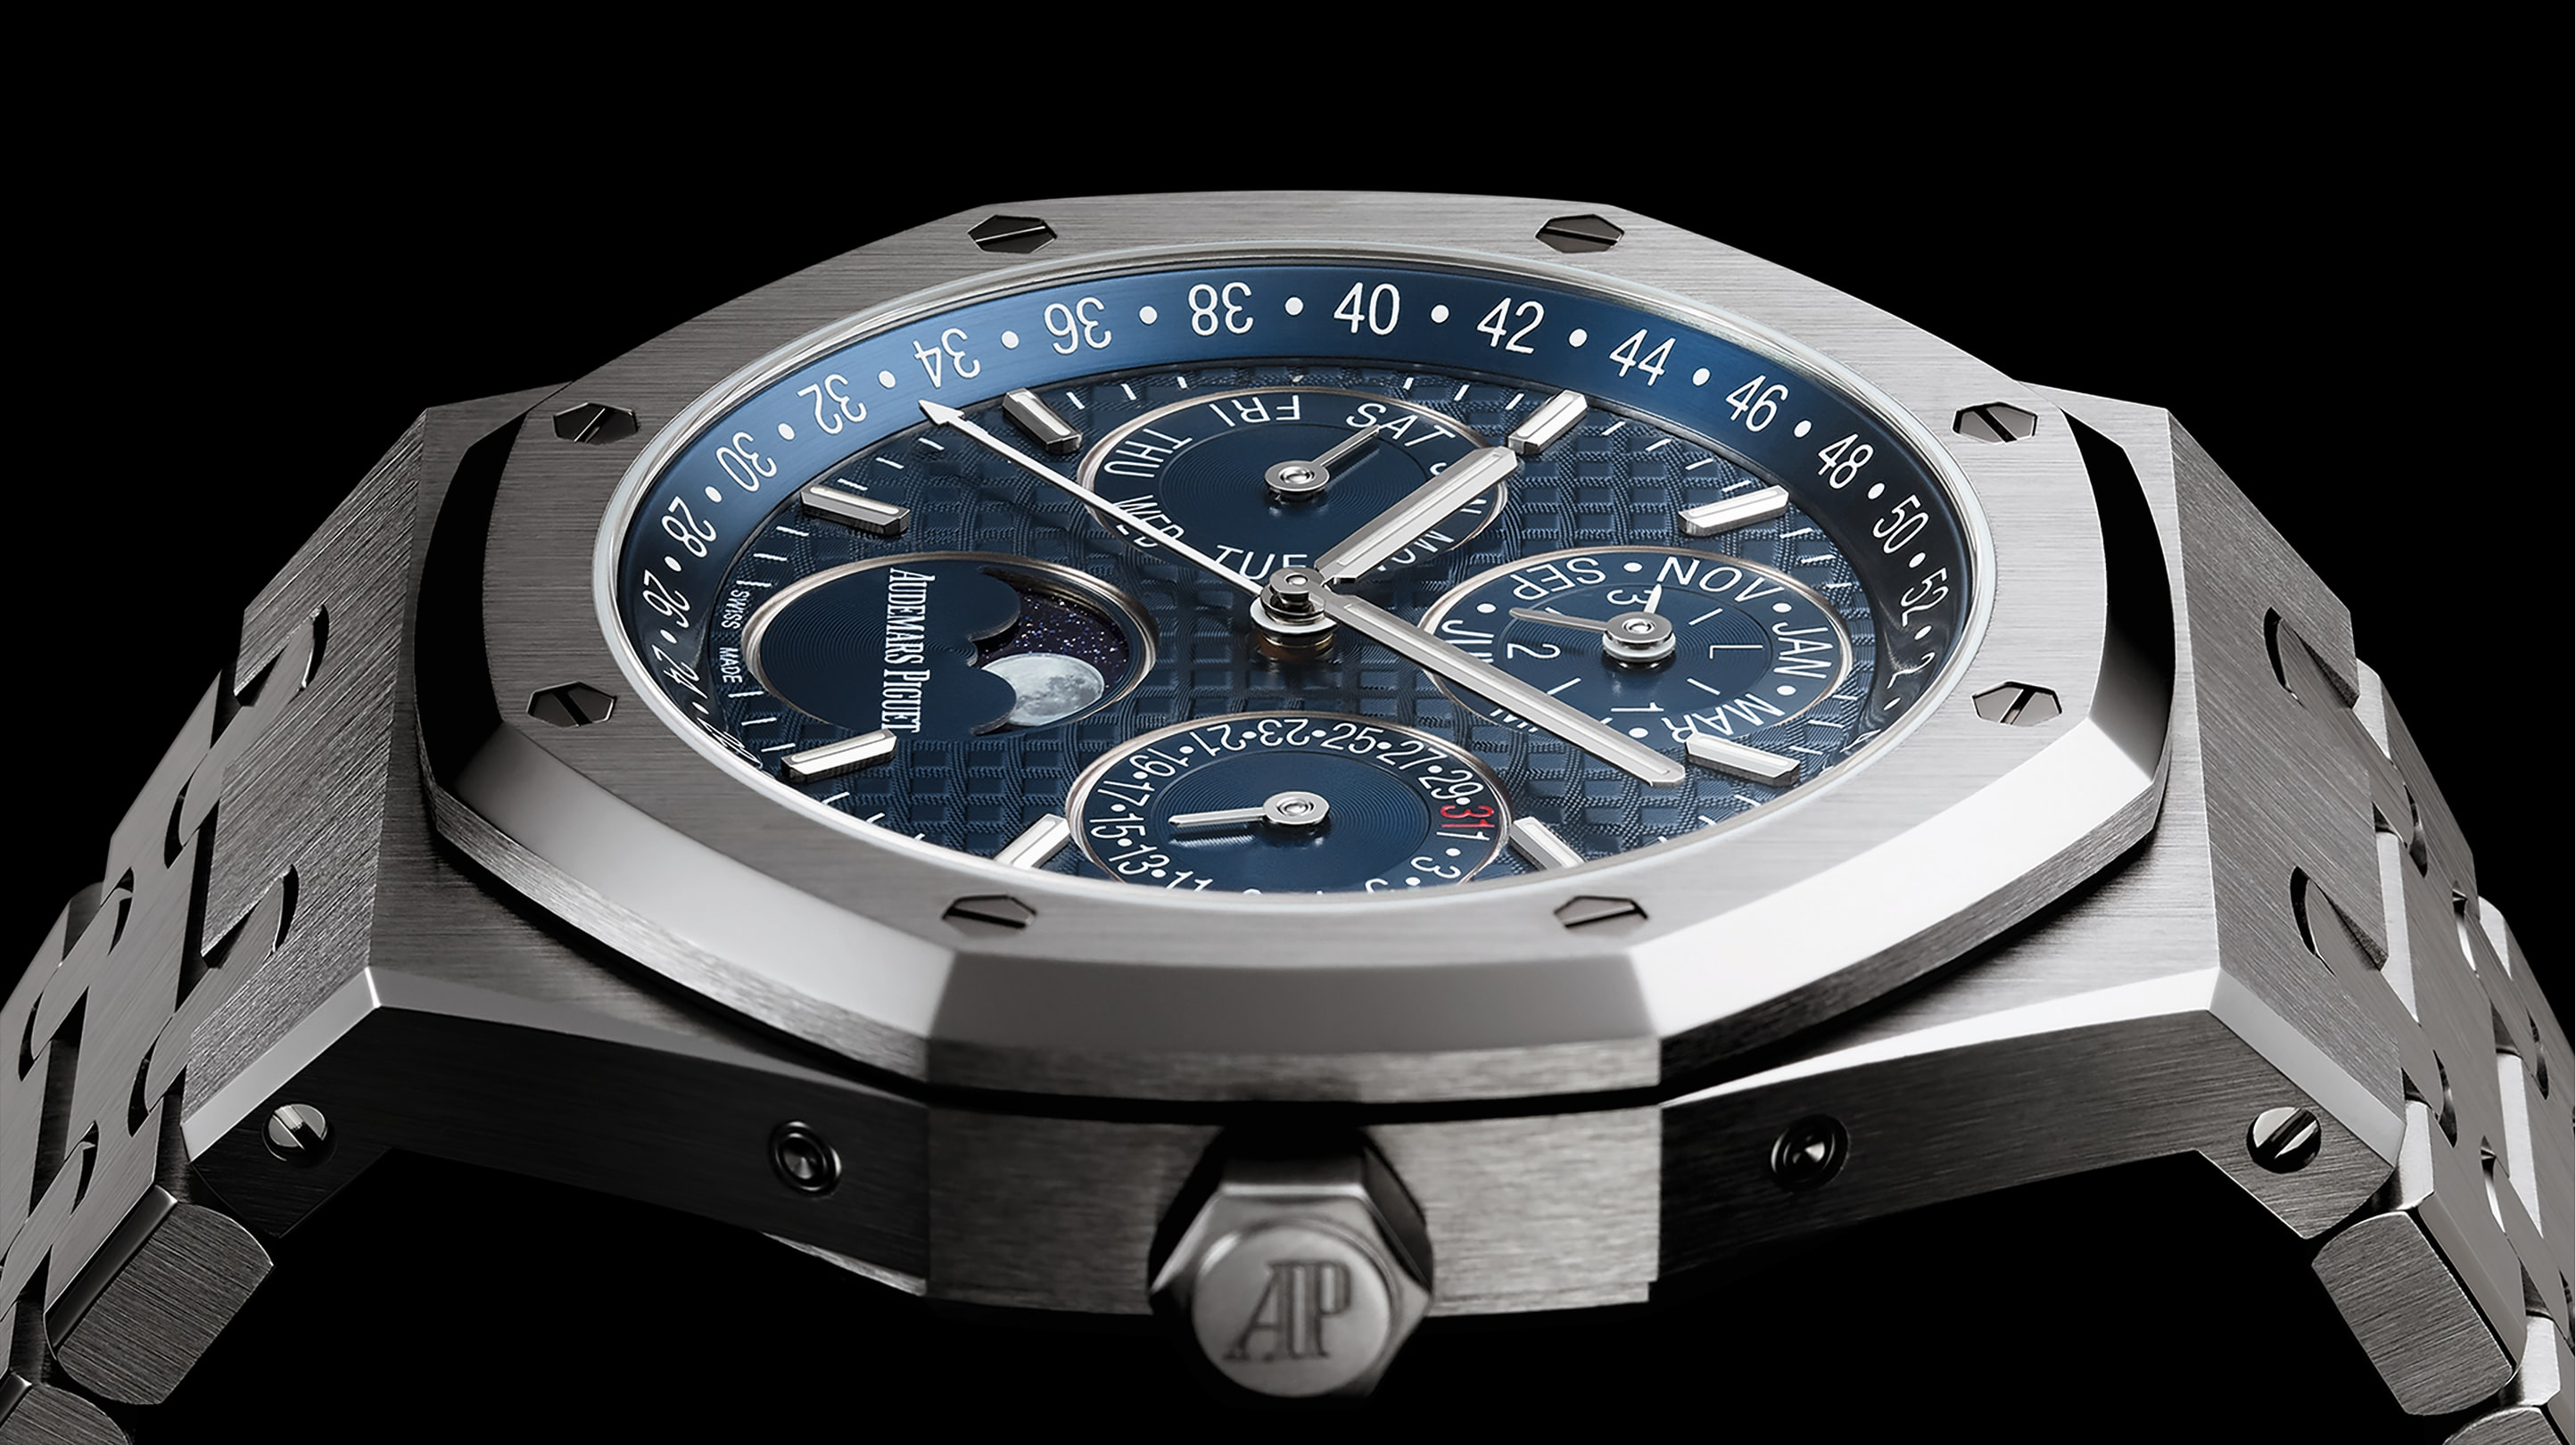 Introducing: The New Audemars Piguet Royal Oak Perpetual Calendar Reference 26574 (Details, Official Pricing)